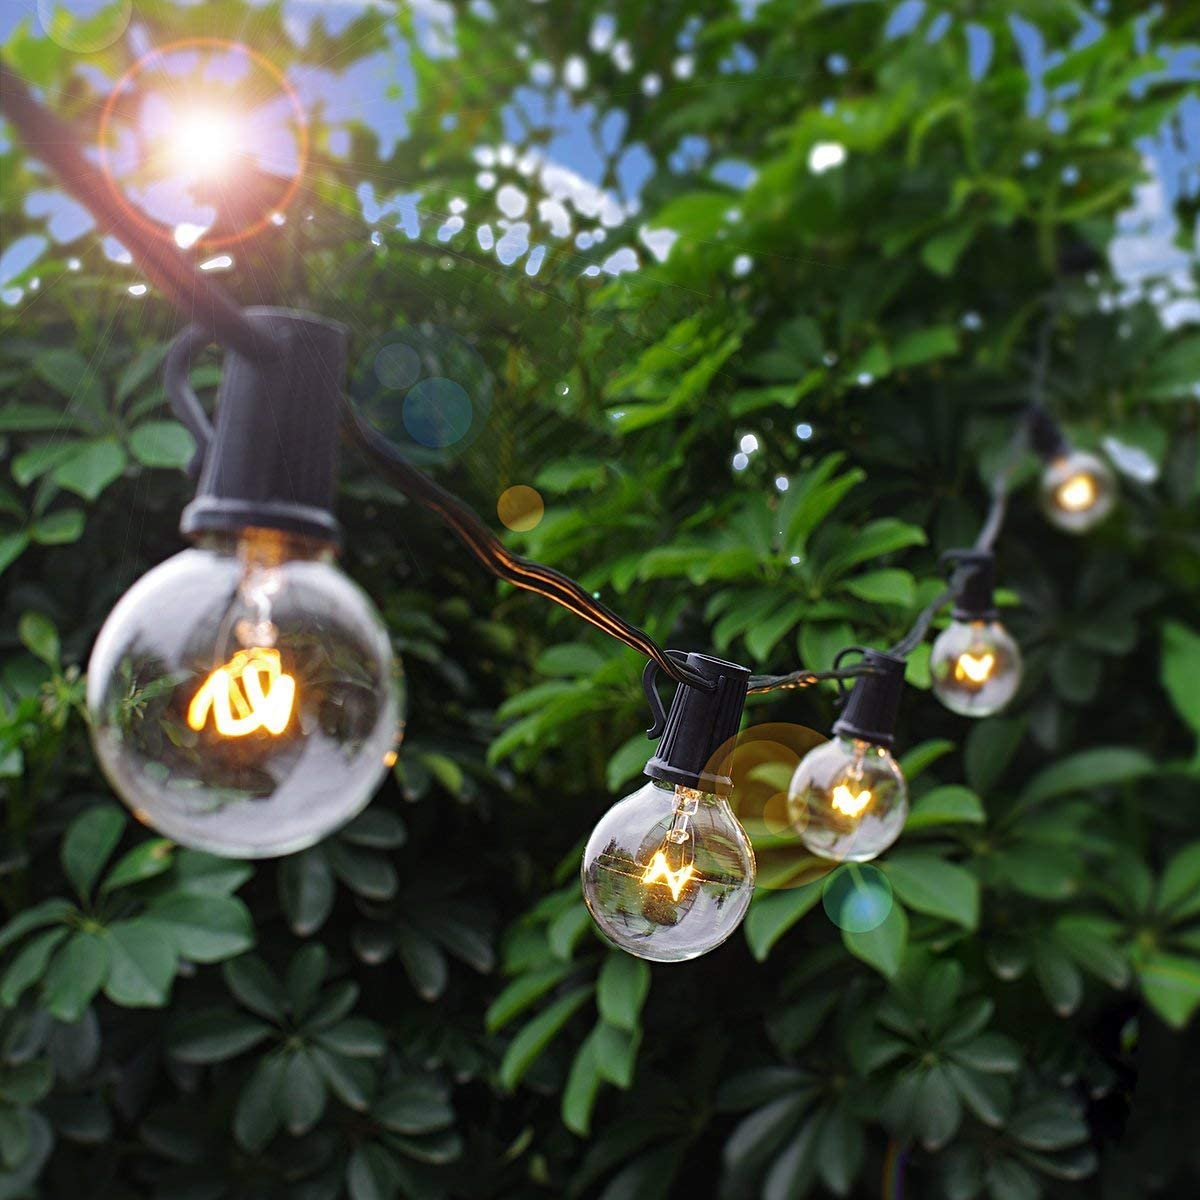 2200K Warm White Connectable Hanging Patio Lights IP44 Waterproof Backyard Lights with E12 Socket 50Ft G40 Outdoor String Lights with 28 Pcs 5W Clear Bulbs Yuusei Globe String Lights 3 Spare